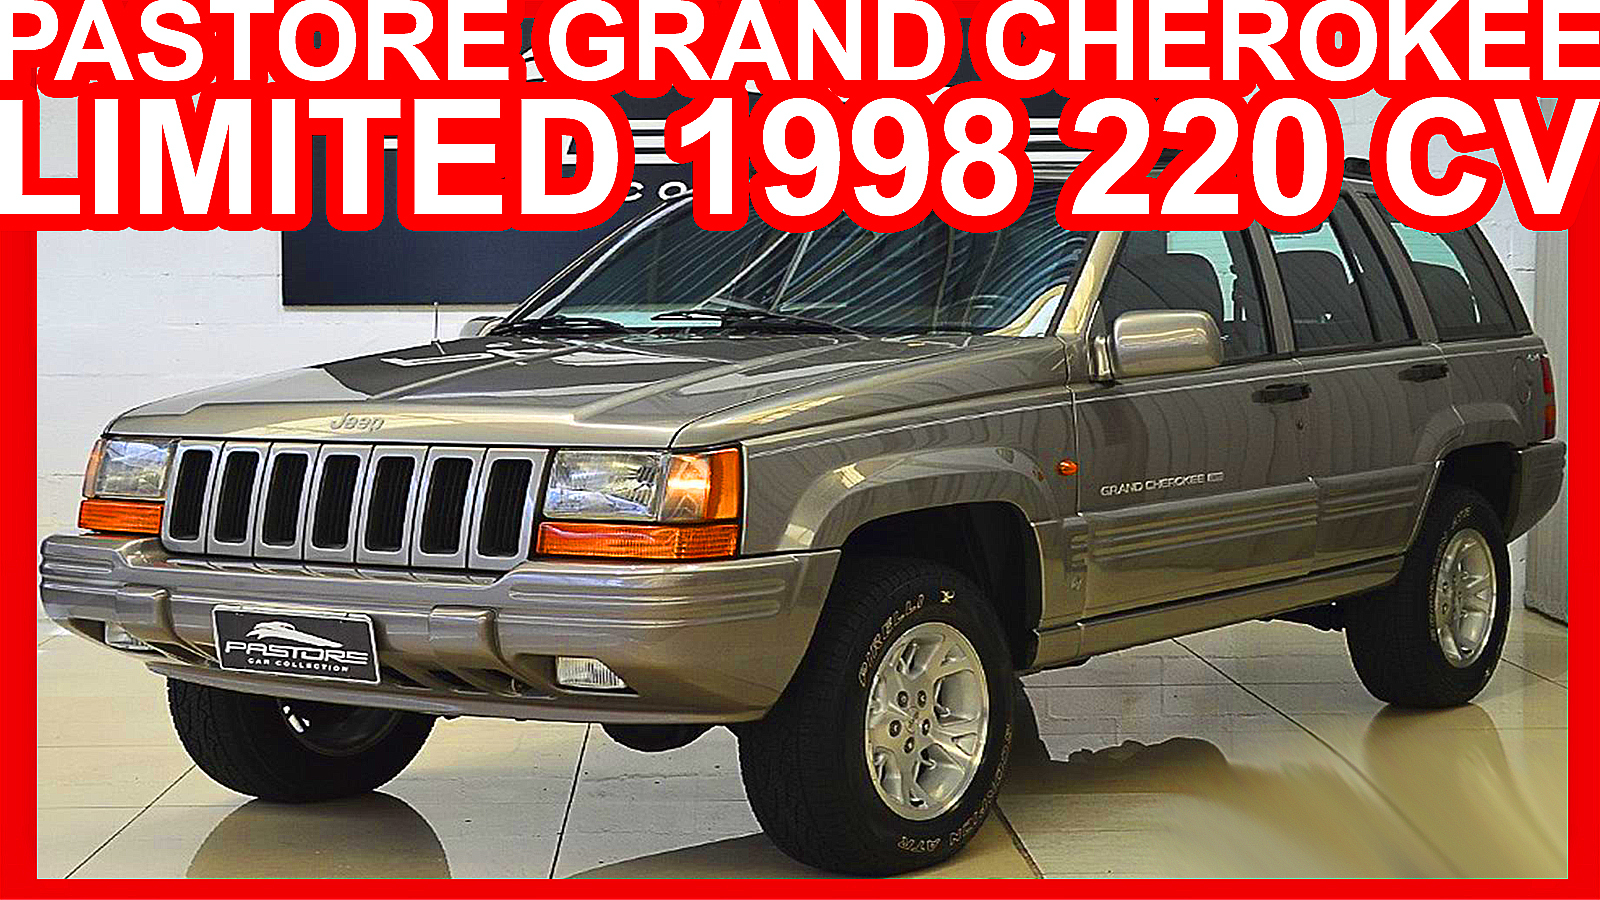 Pastore jeep grand cherokee limited 1998 prata aro 16 at4 4x4 52 v8 pastore jeep grand cherokee limited 1998 prata aro 16 at4 4x4 52 v8 220 cv 415 kgfm 180 kmh 0 100 kmh 95 s jeep fandeluxe Gallery